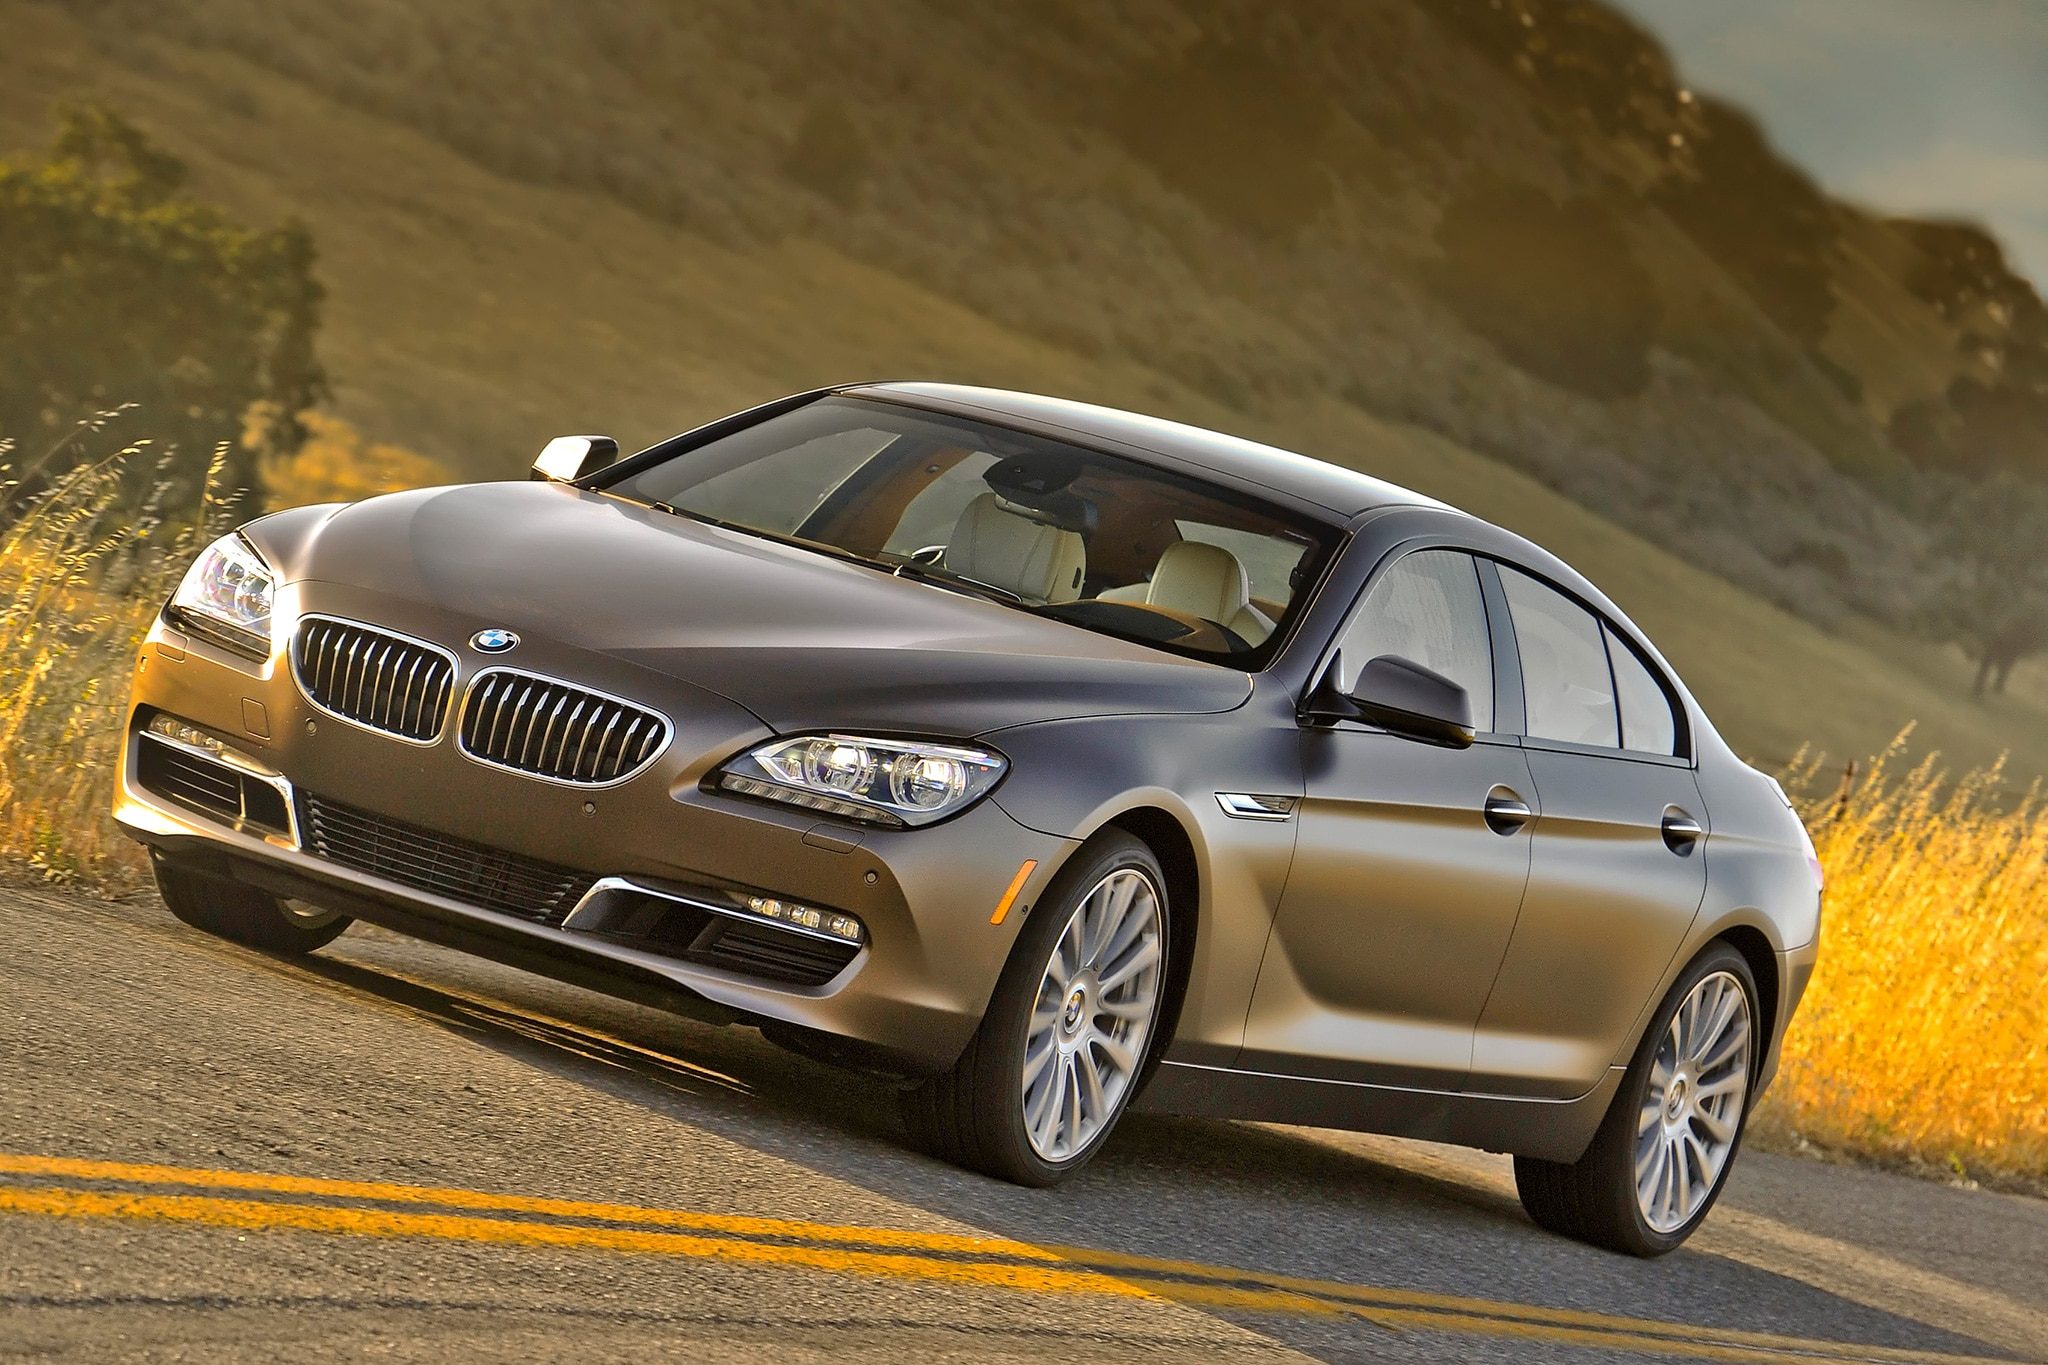 2014 bmw 640i xdrive gran coupe around the block. Black Bedroom Furniture Sets. Home Design Ideas